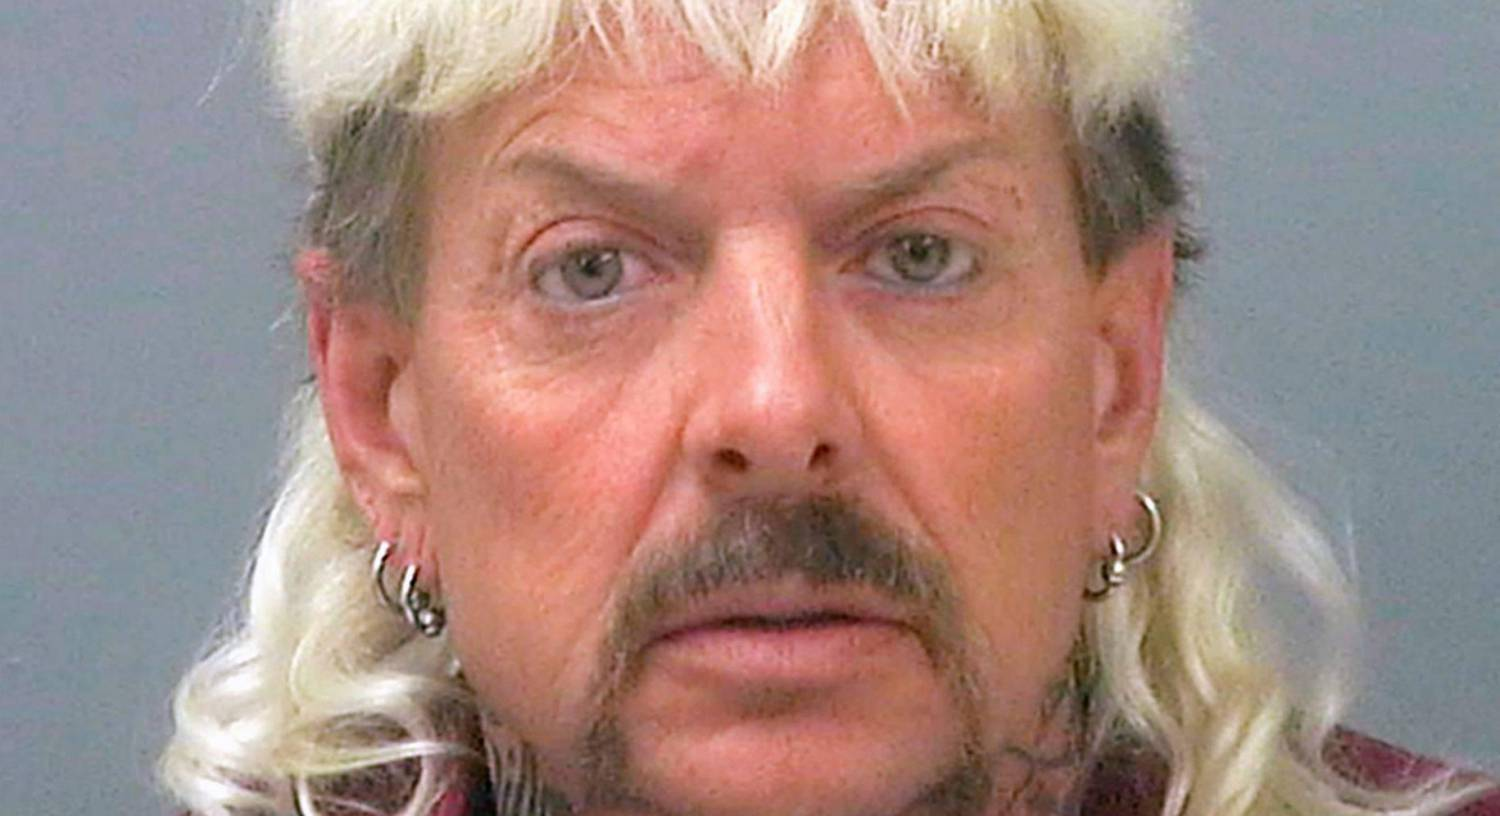 Tiger King Joe Exotic has become the unlikely style icon of the quarantine period